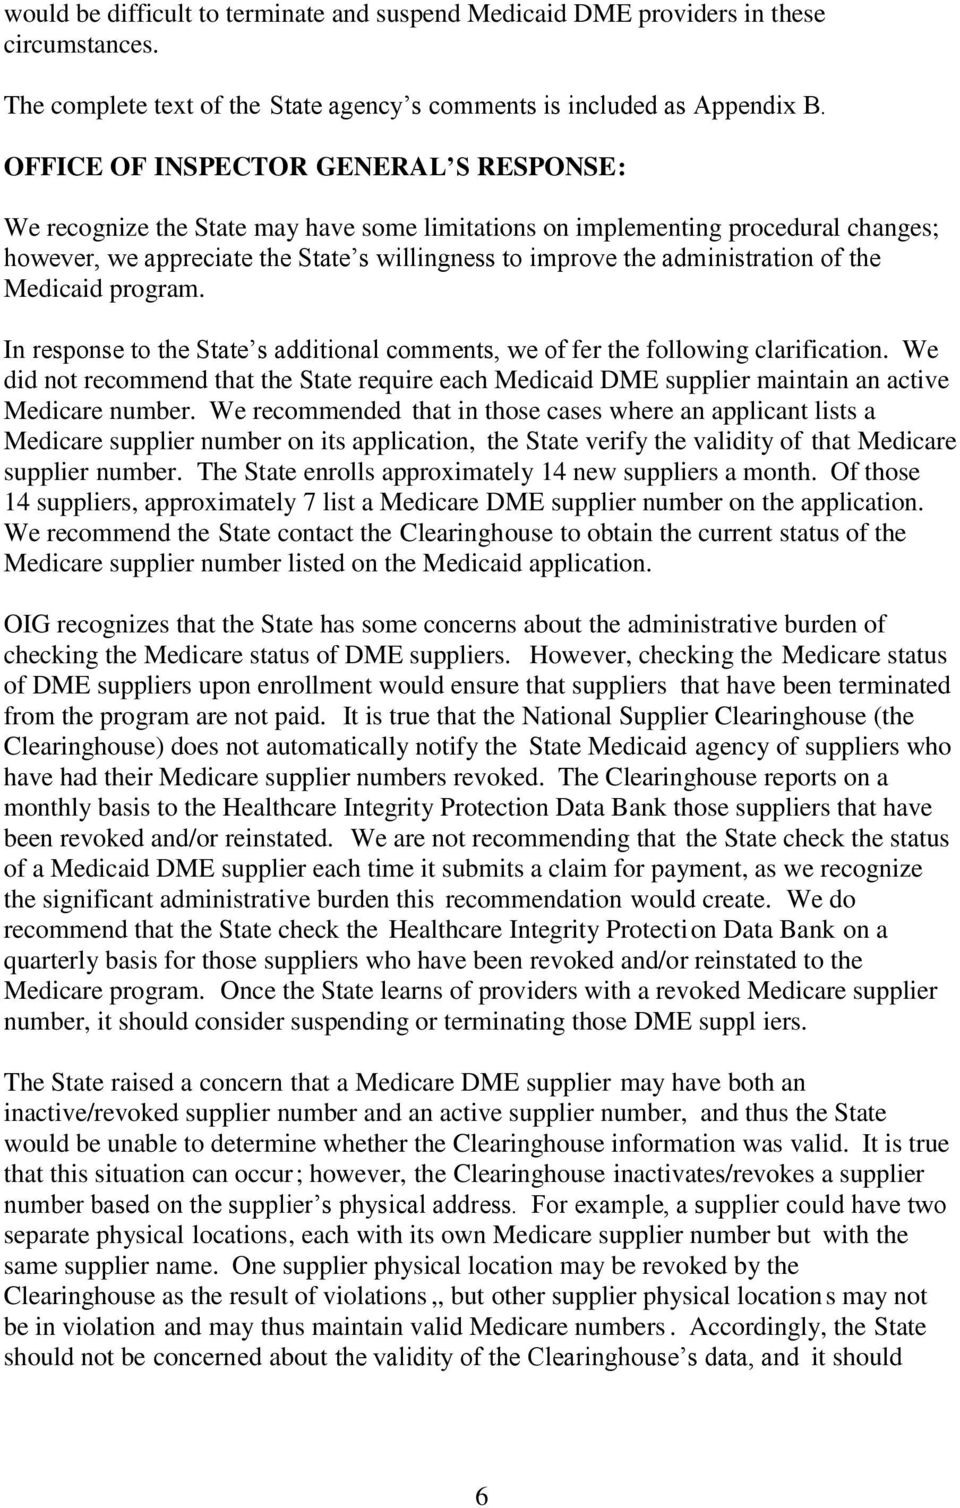 administration of the Medicaid program. In response to the State s additional comments, we of fer the following clarification.